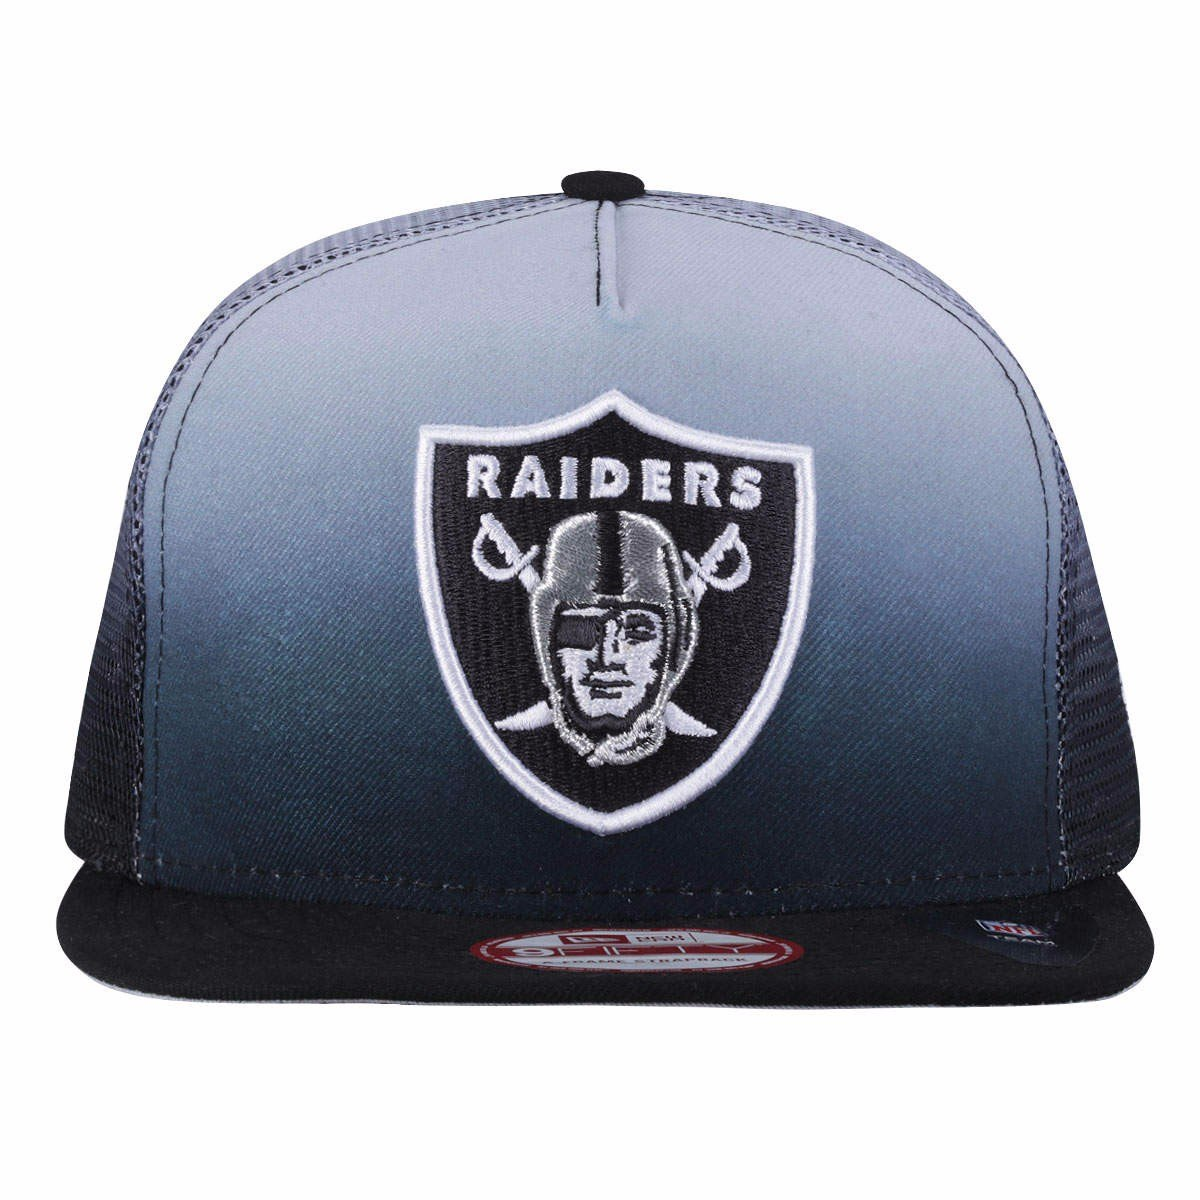 a9c1301e74cfe boné aba reta new era oakland raiders - strapback 9fifty. Carregando zoom.